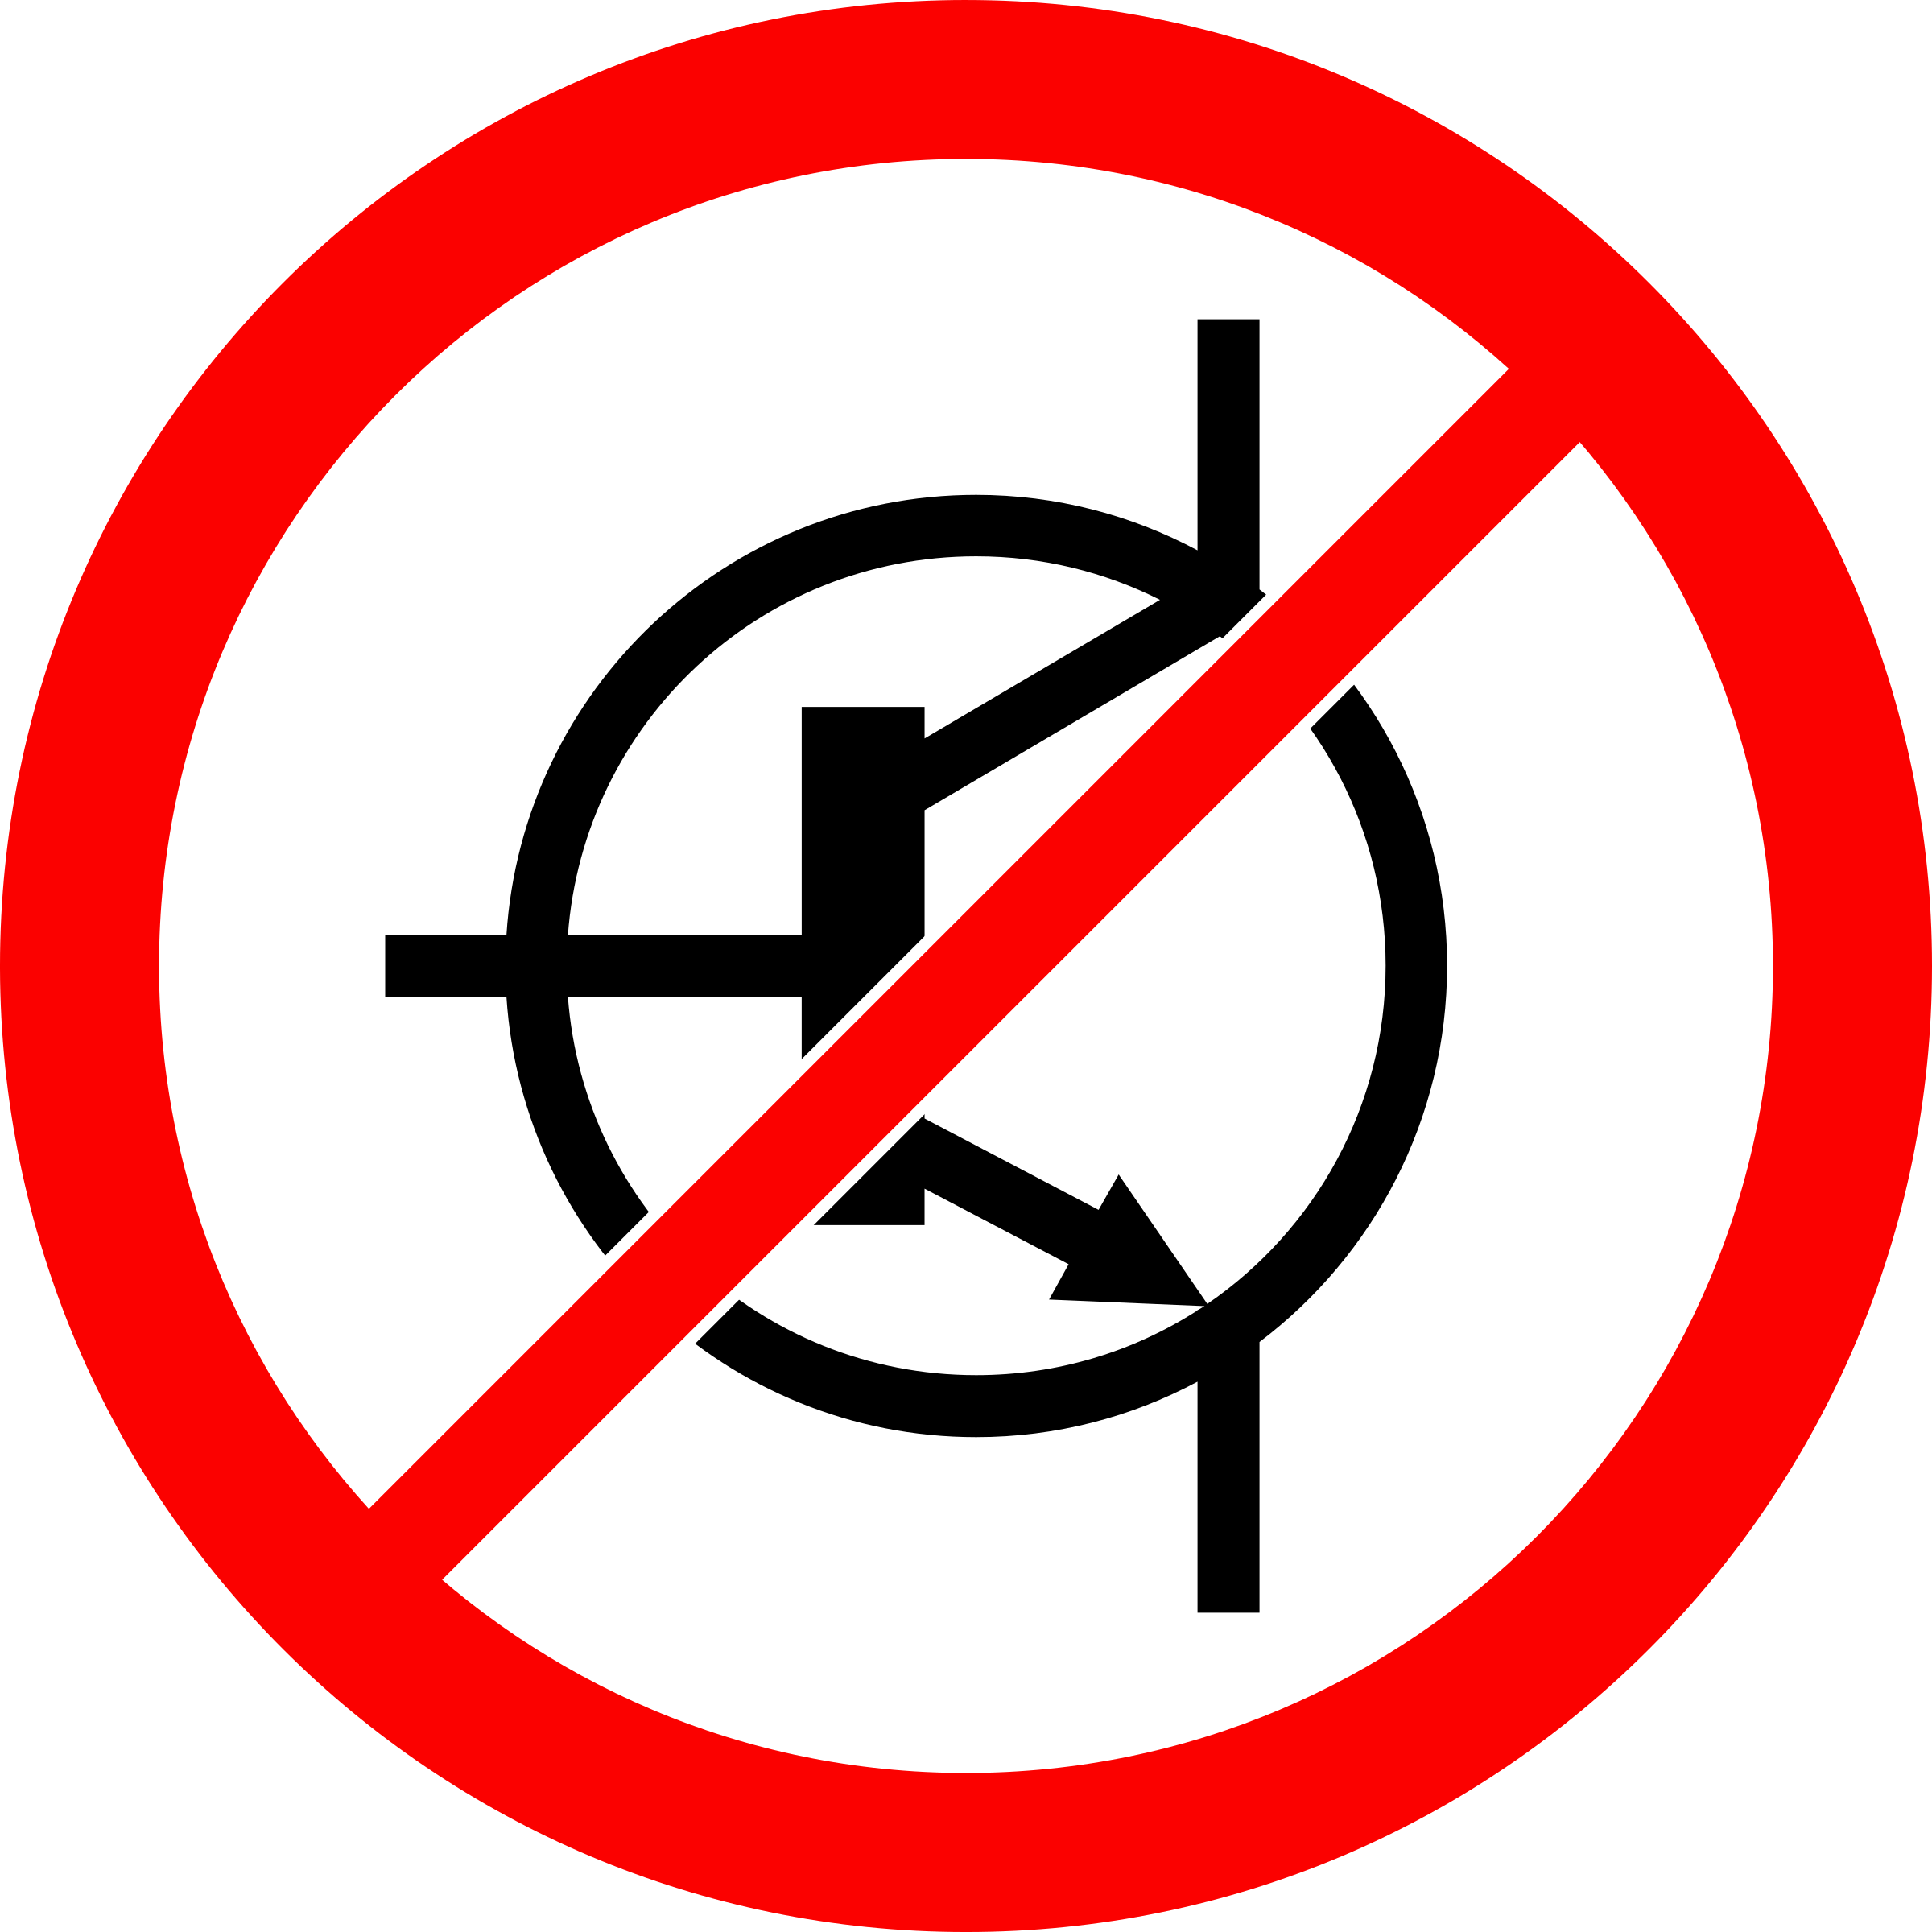 No transistor sign by boobaloo